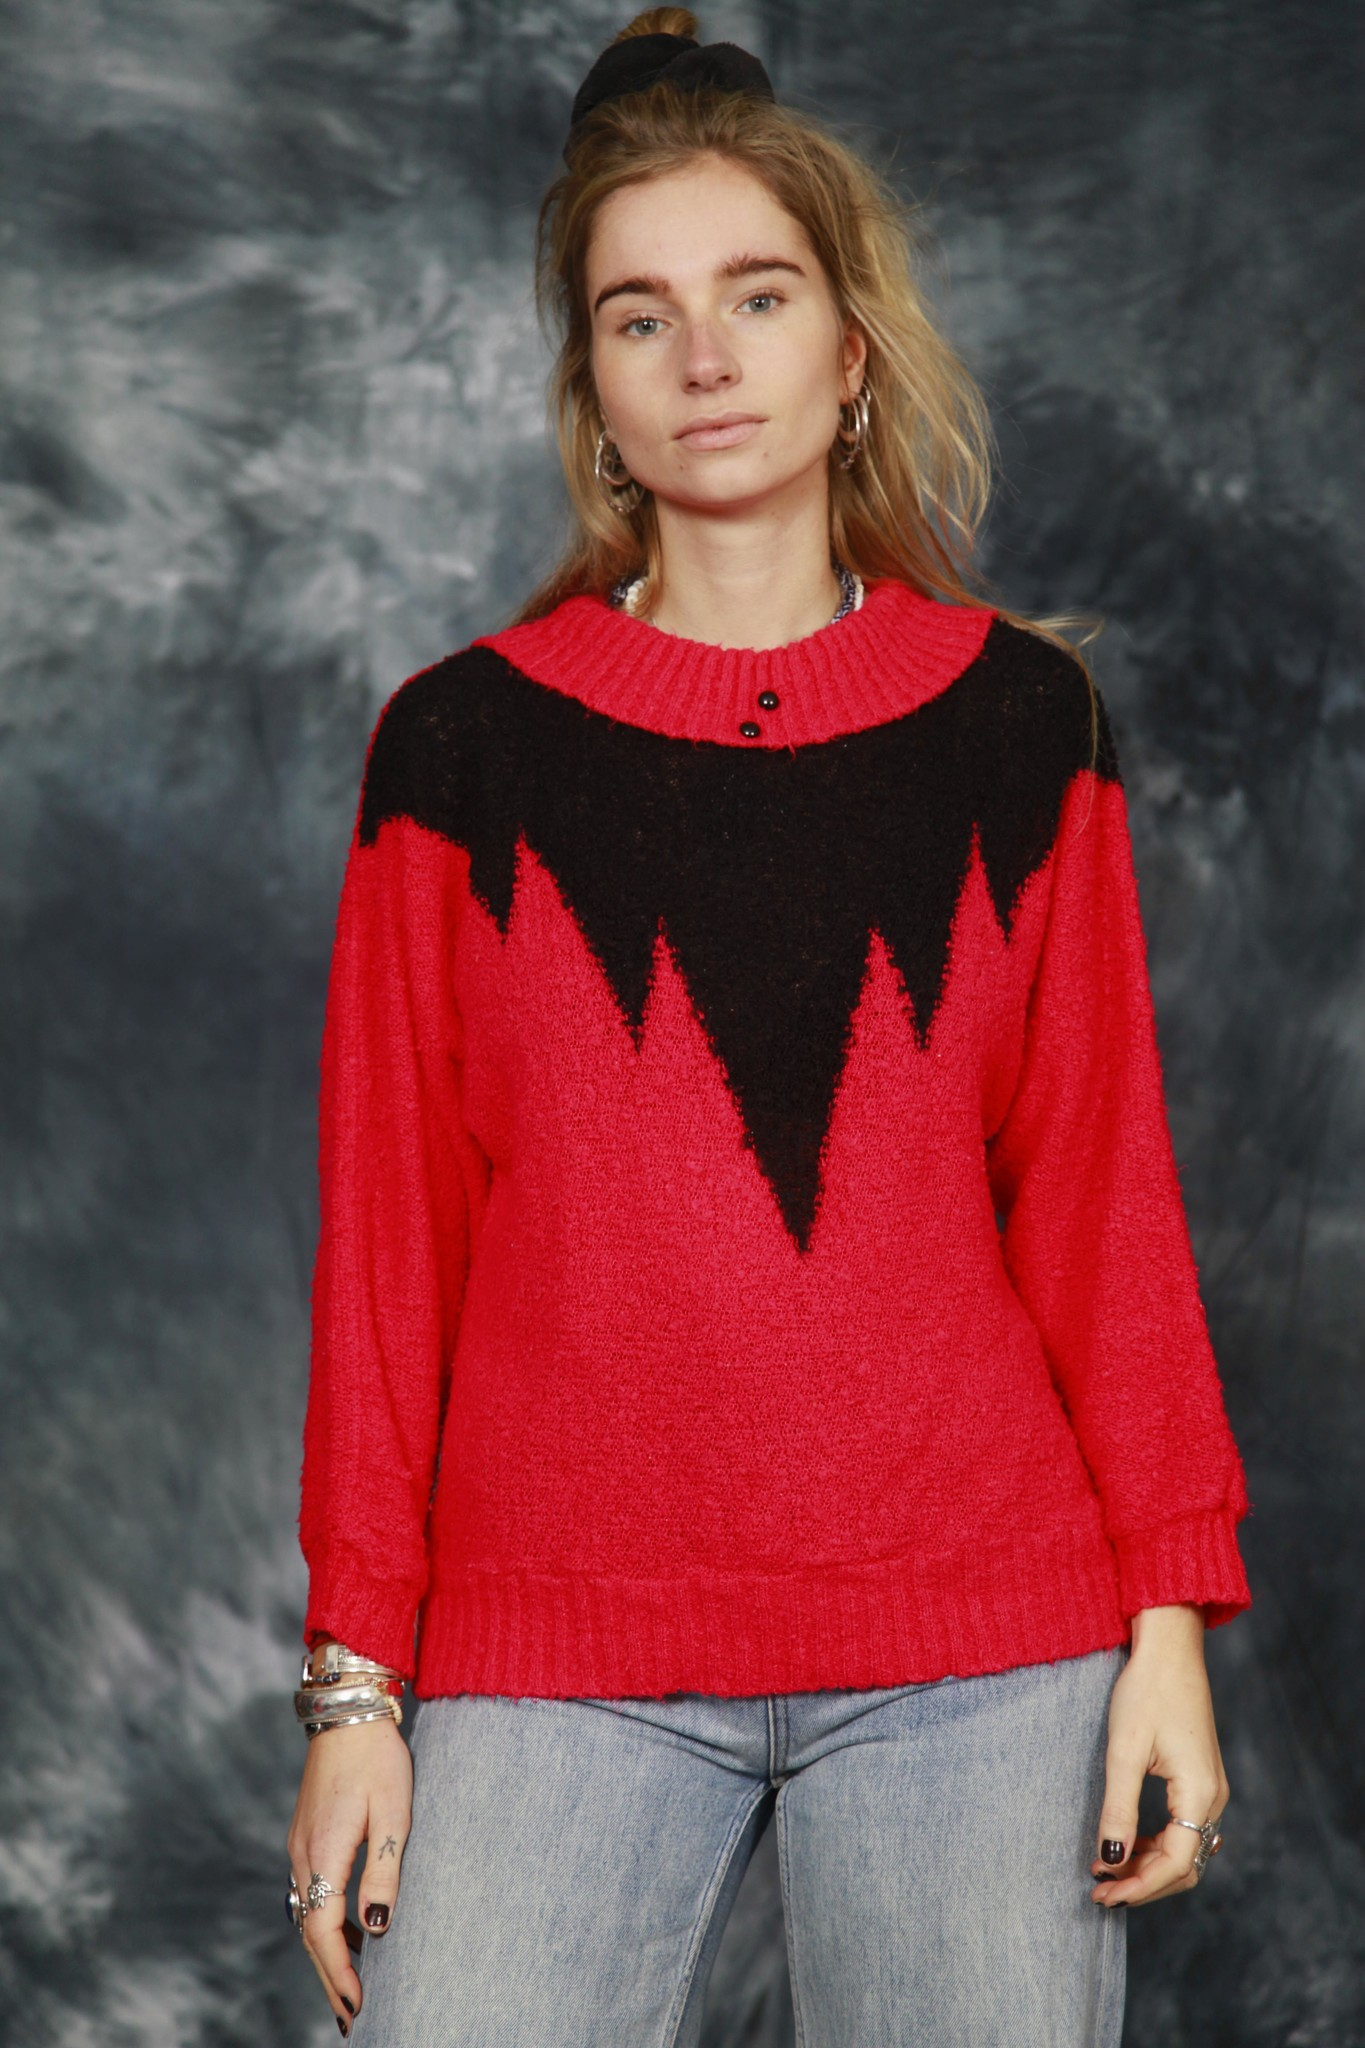 Colorful 80s jumper